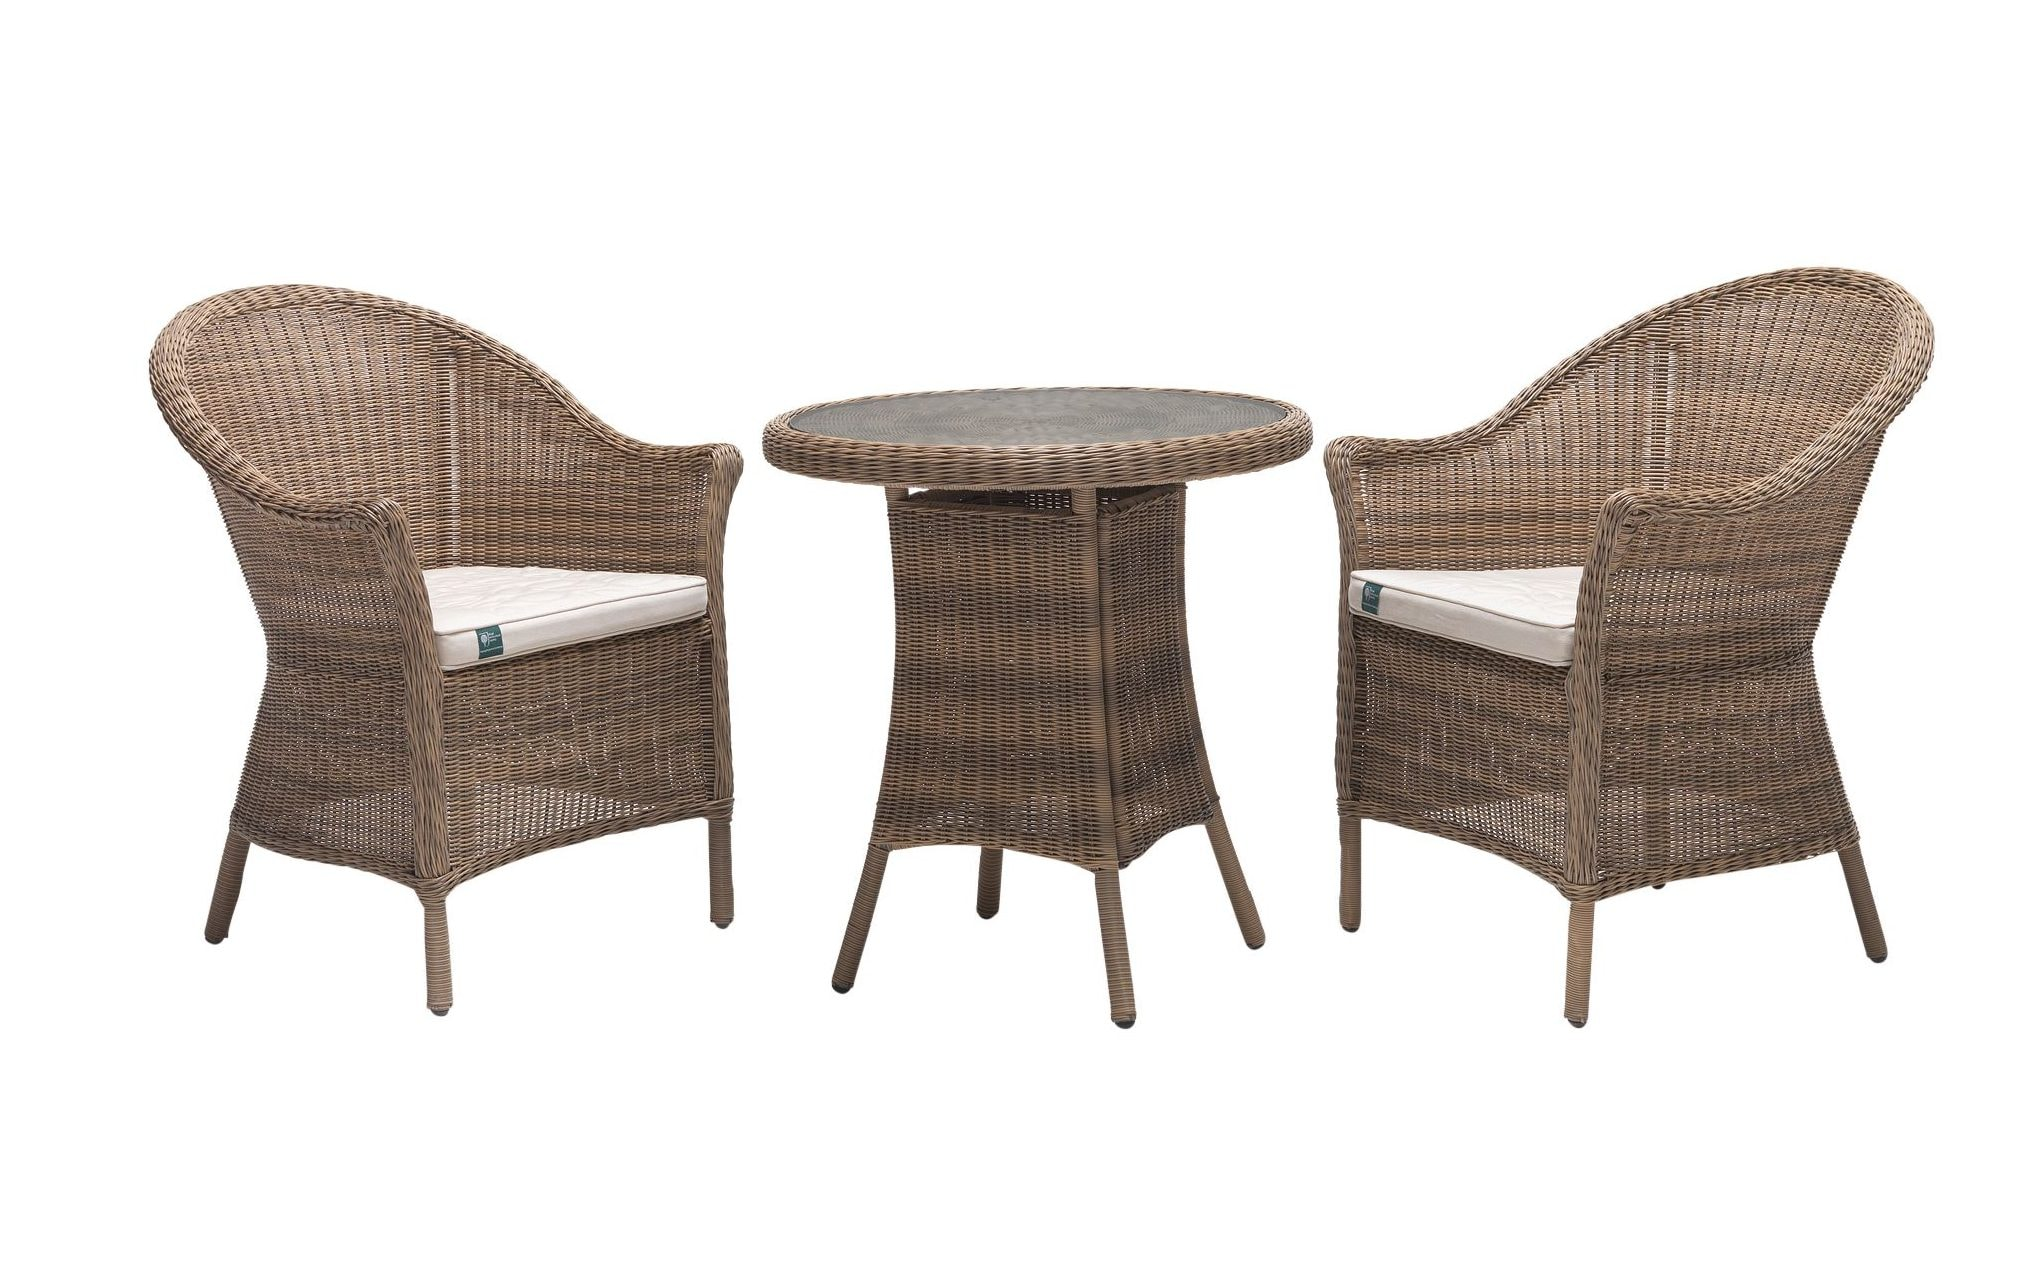 Rattan Egg Chair Set Best Rattan Garden Furniture And Where To Buy It The Telegraph